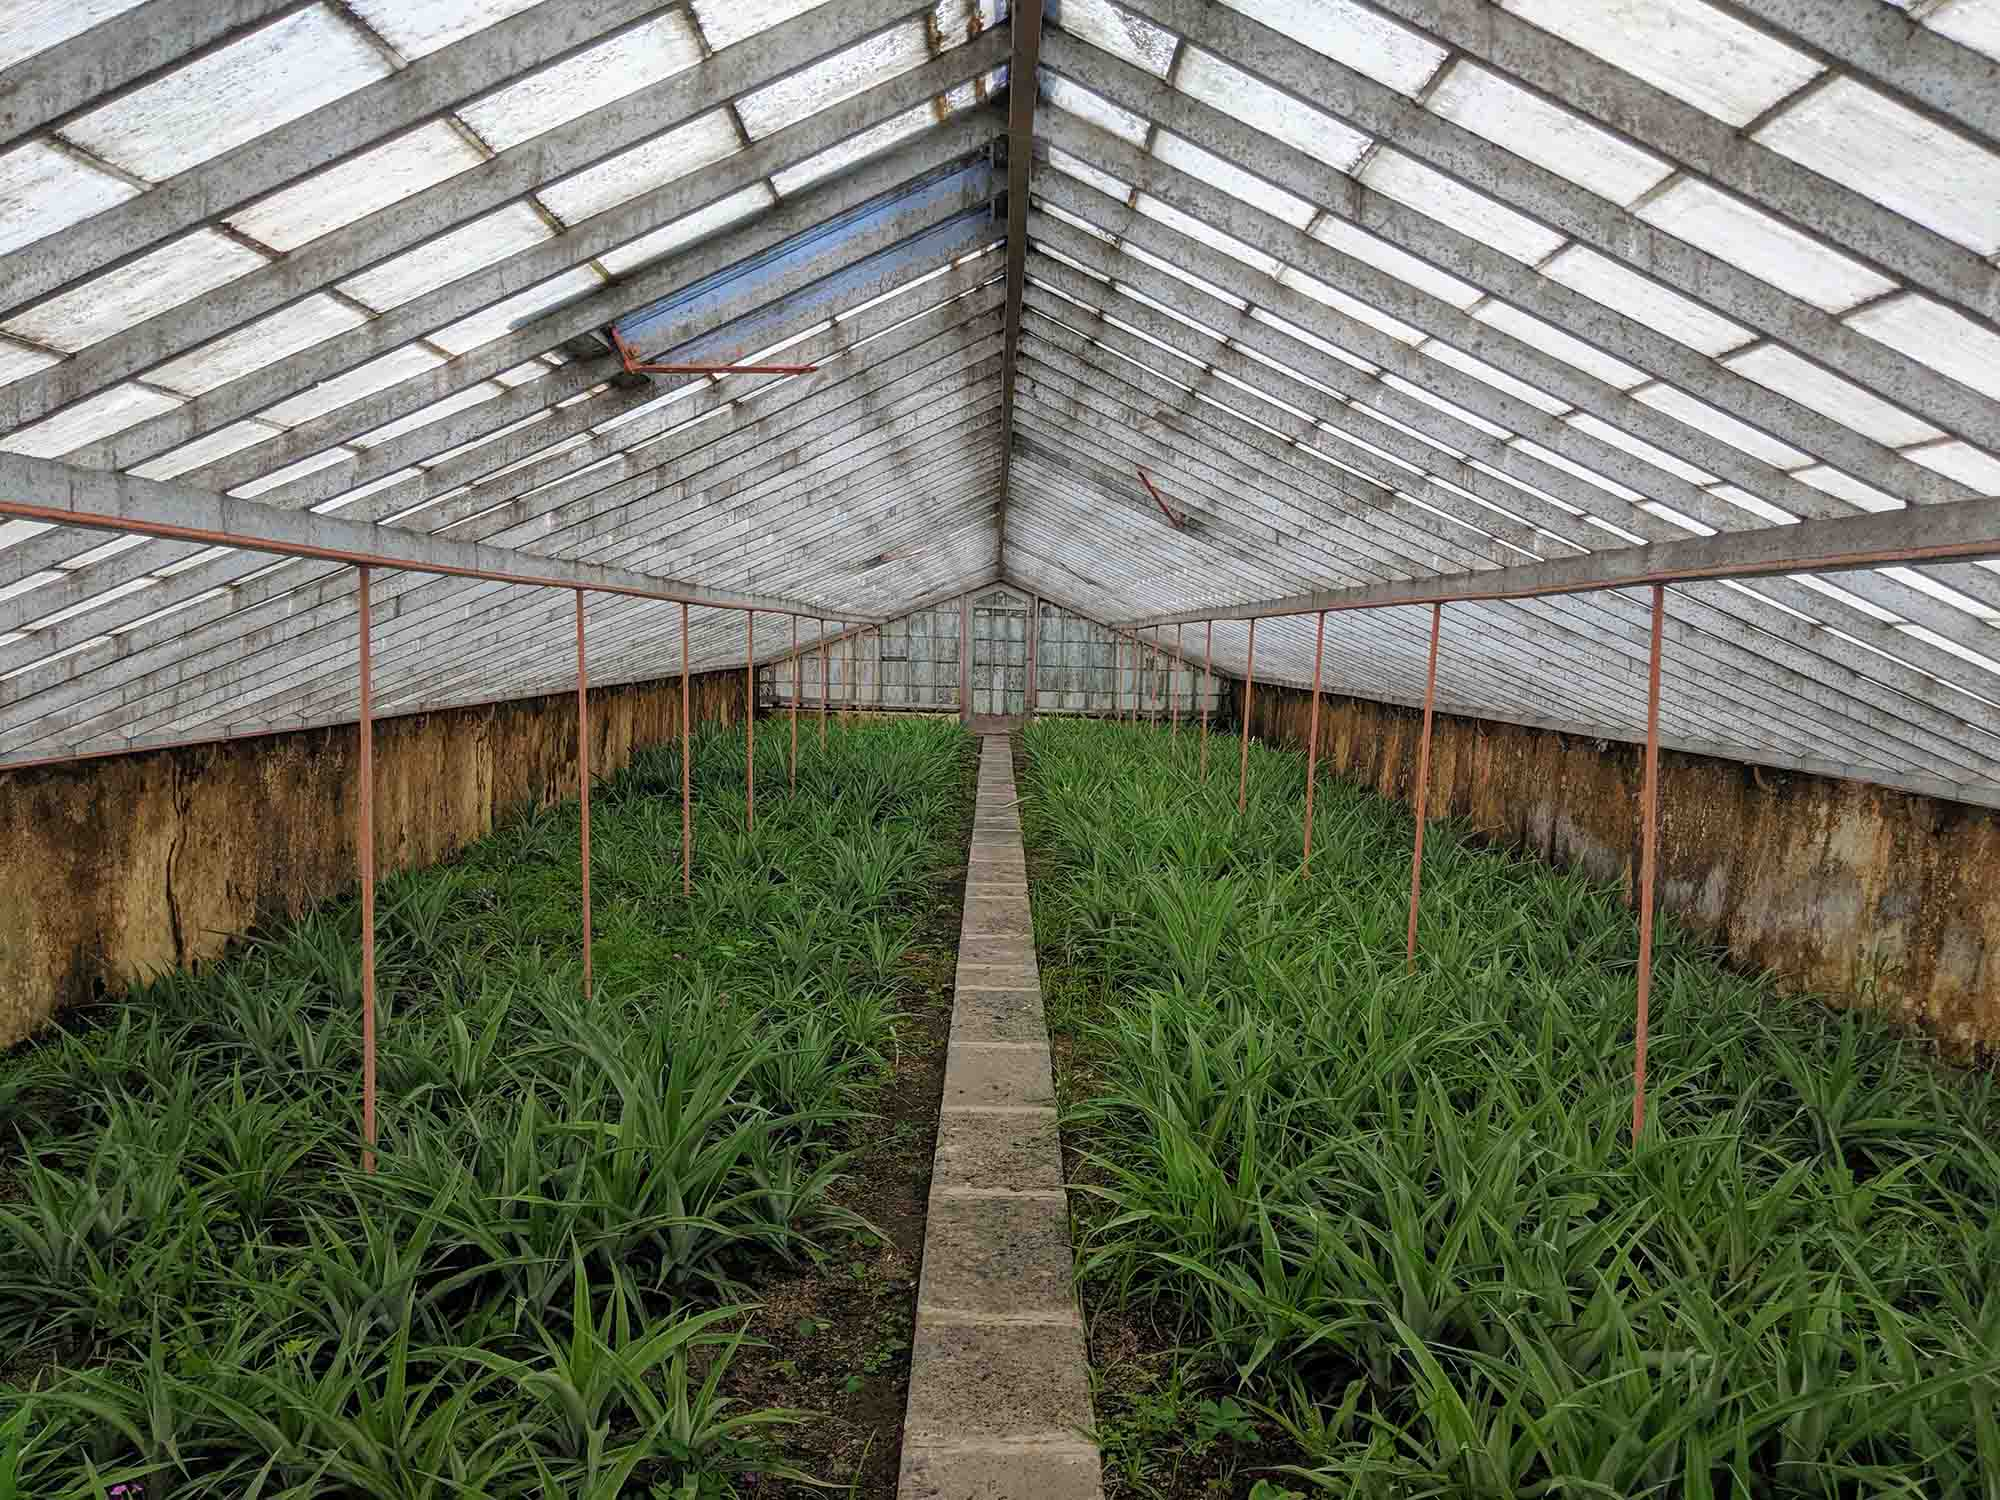 Pineapple greenhouse on sao miguel